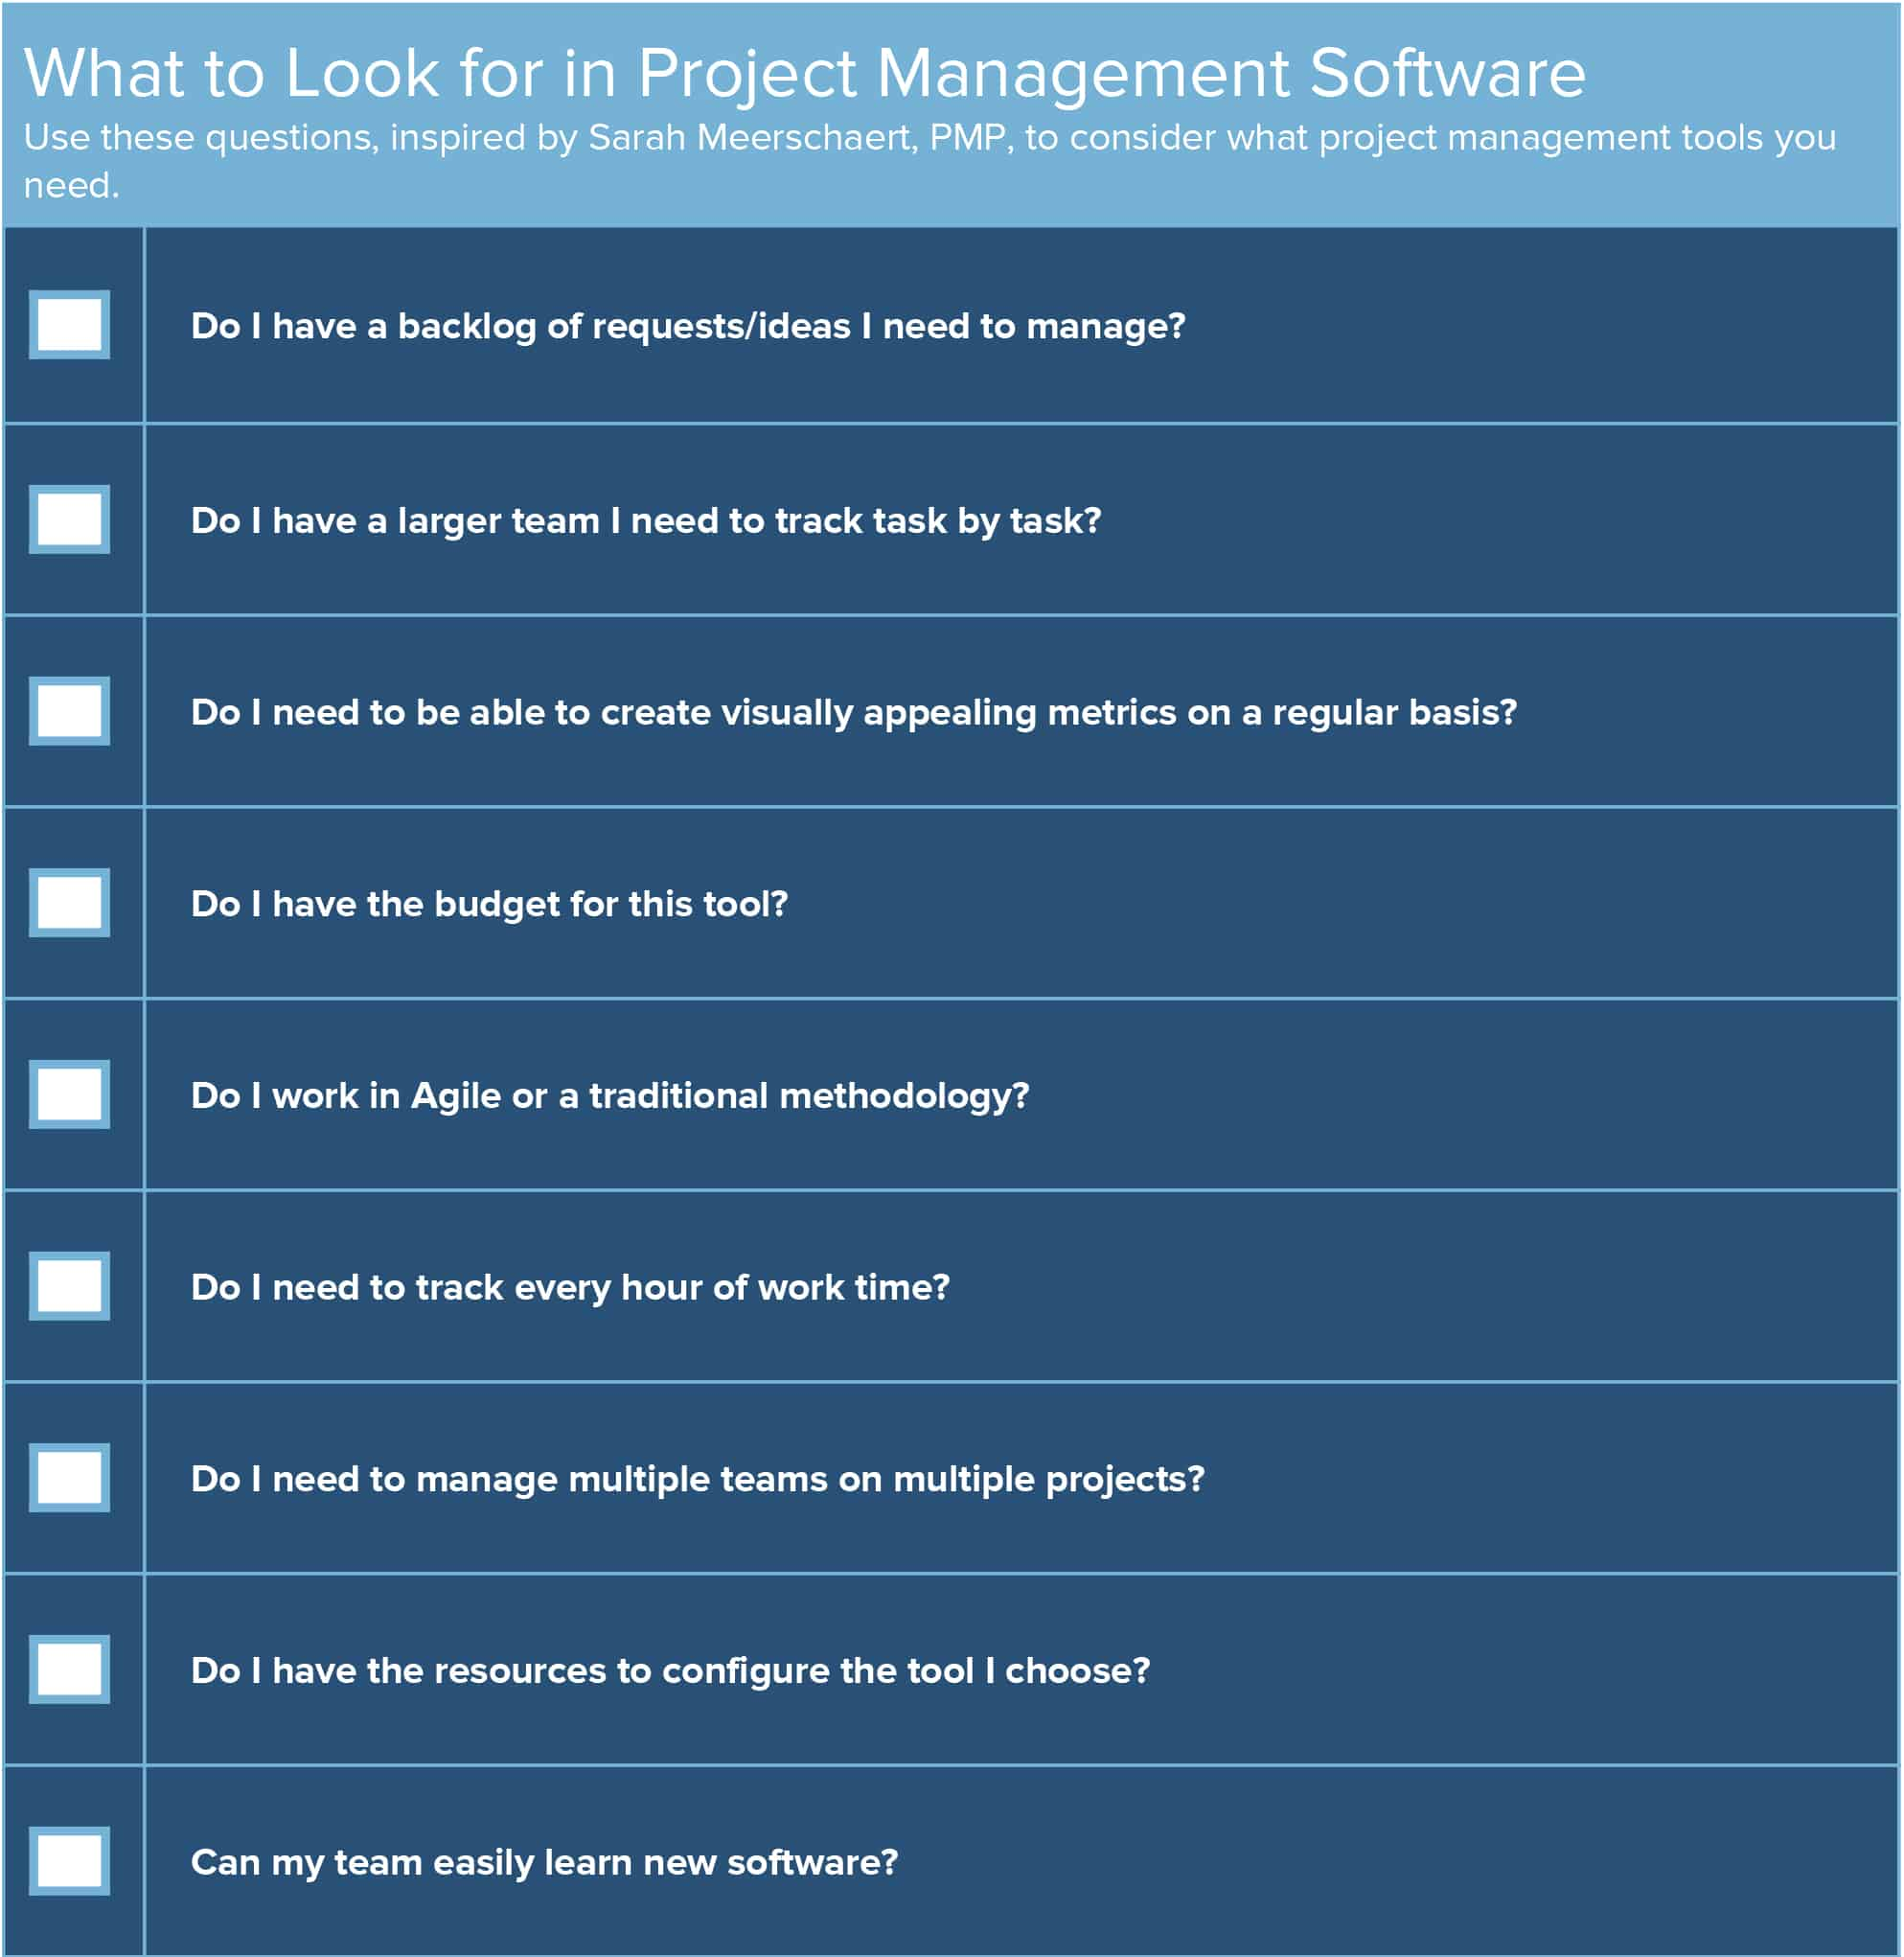 How to use jira for project management smartsheet ic jira pm pm softwareg 1betcityfo Image collections